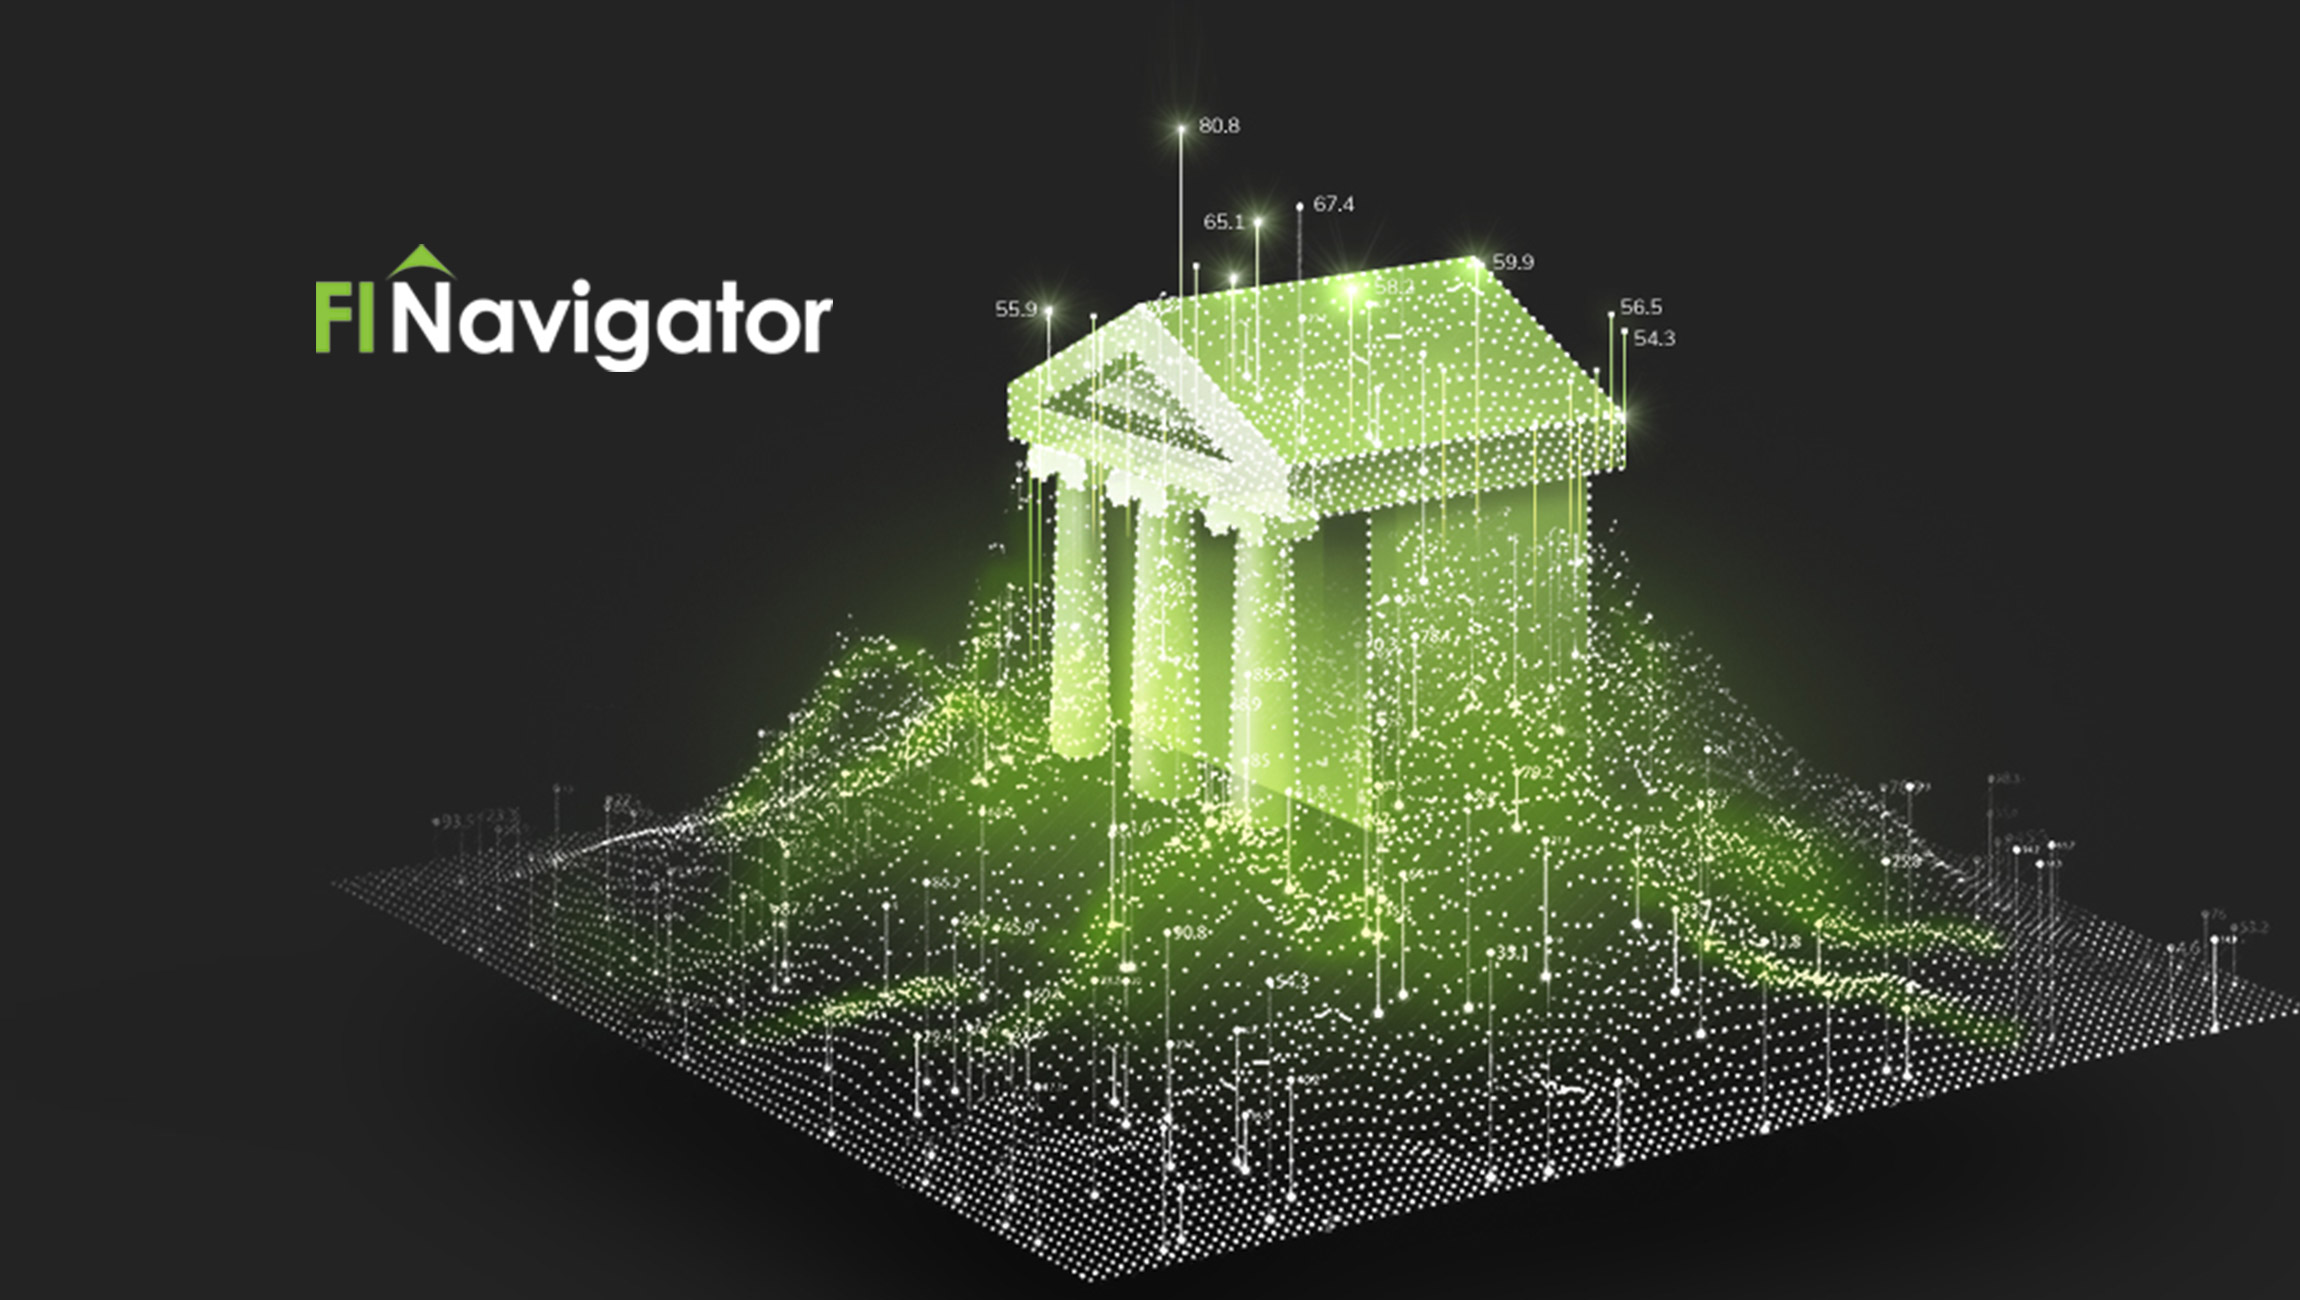 FinTech Sales Veteran Edward Hunter Joins FI Navigator Management Team